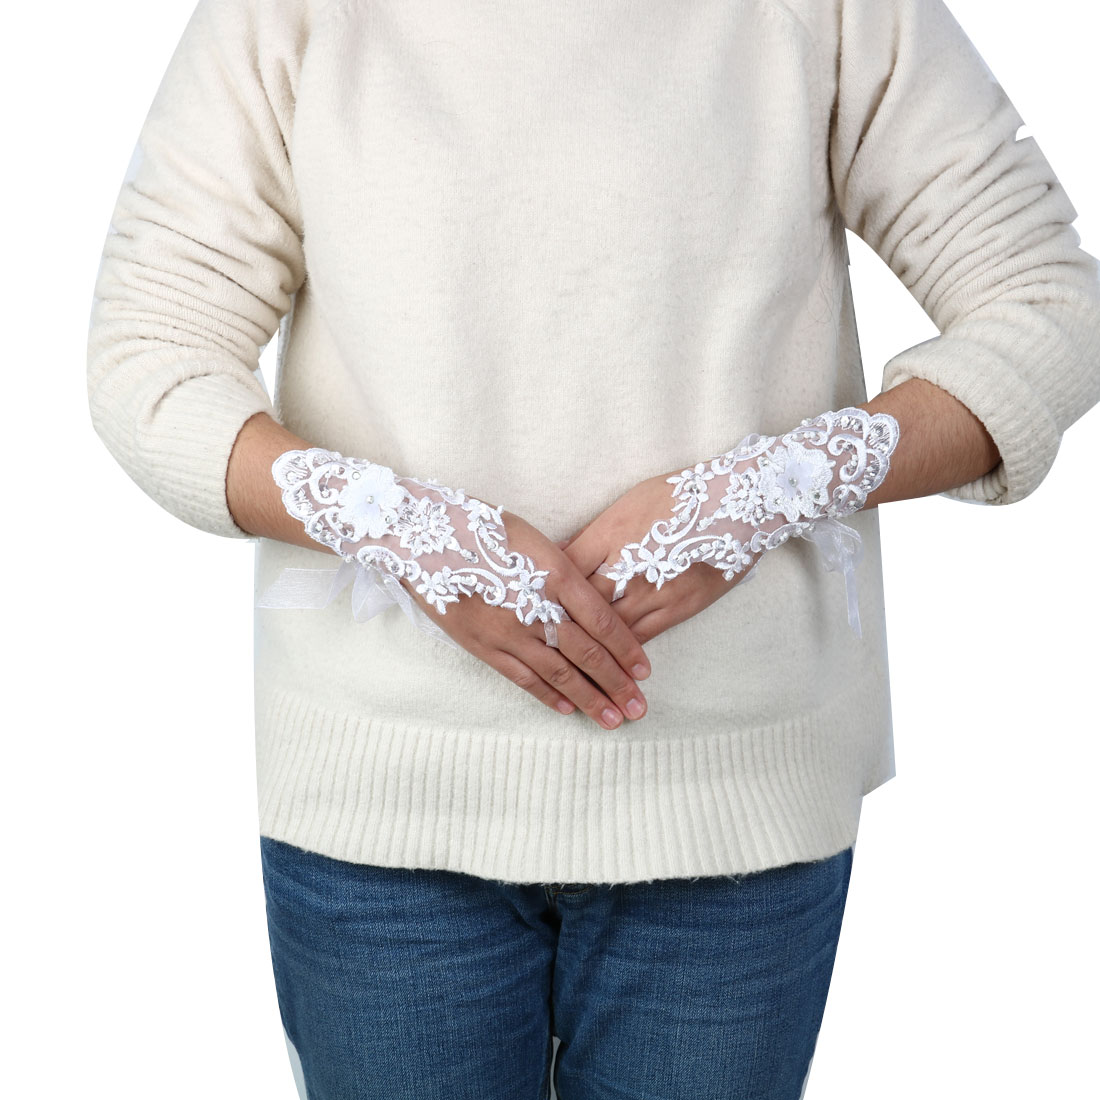 Bridal Party Polyester Flower Style Craft Bride Hand Lace Fingerless Glove Pair